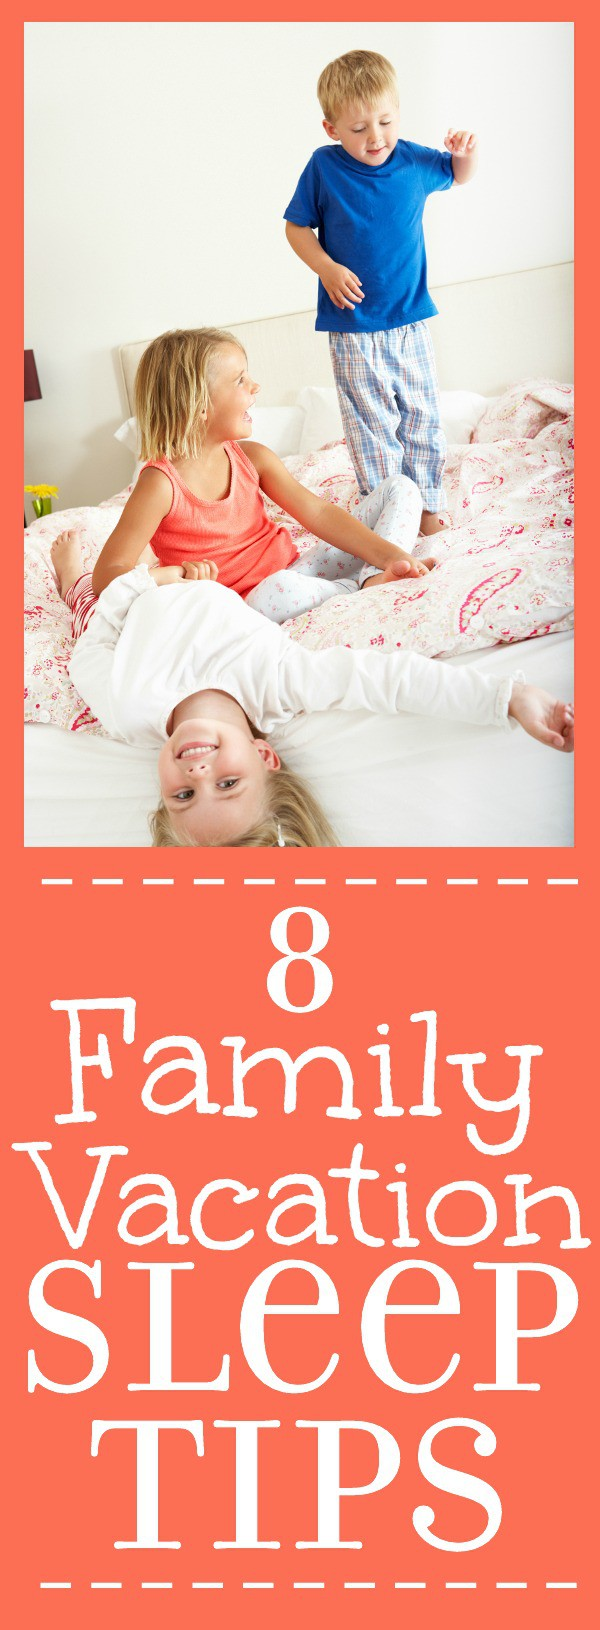 Tips for getting sleep and staying rested while on vacation with kids for a fabulous family vacation.Use these 8Tips for Making Sure the Whole Family Sleeps Well on Vacation to keep the whole family happy, rested, and having fun for your vacation this year!